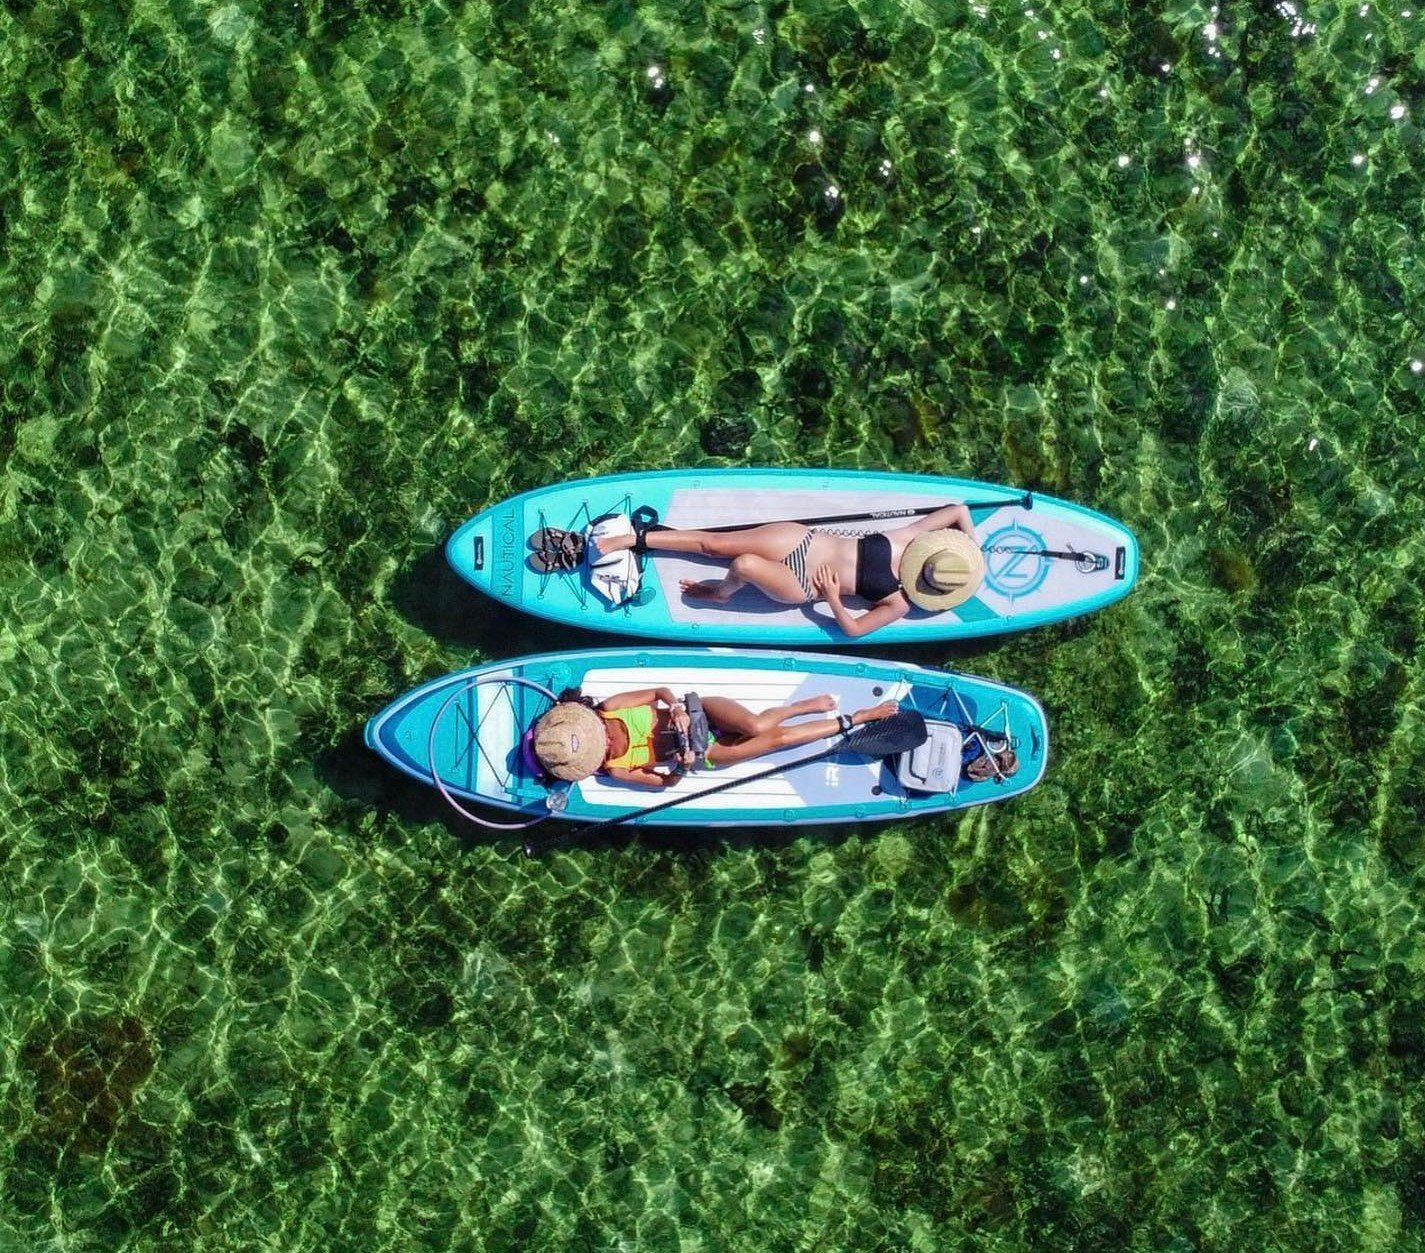 HOW DO I CHOOSE MY FIRST PADDLE BOARD?